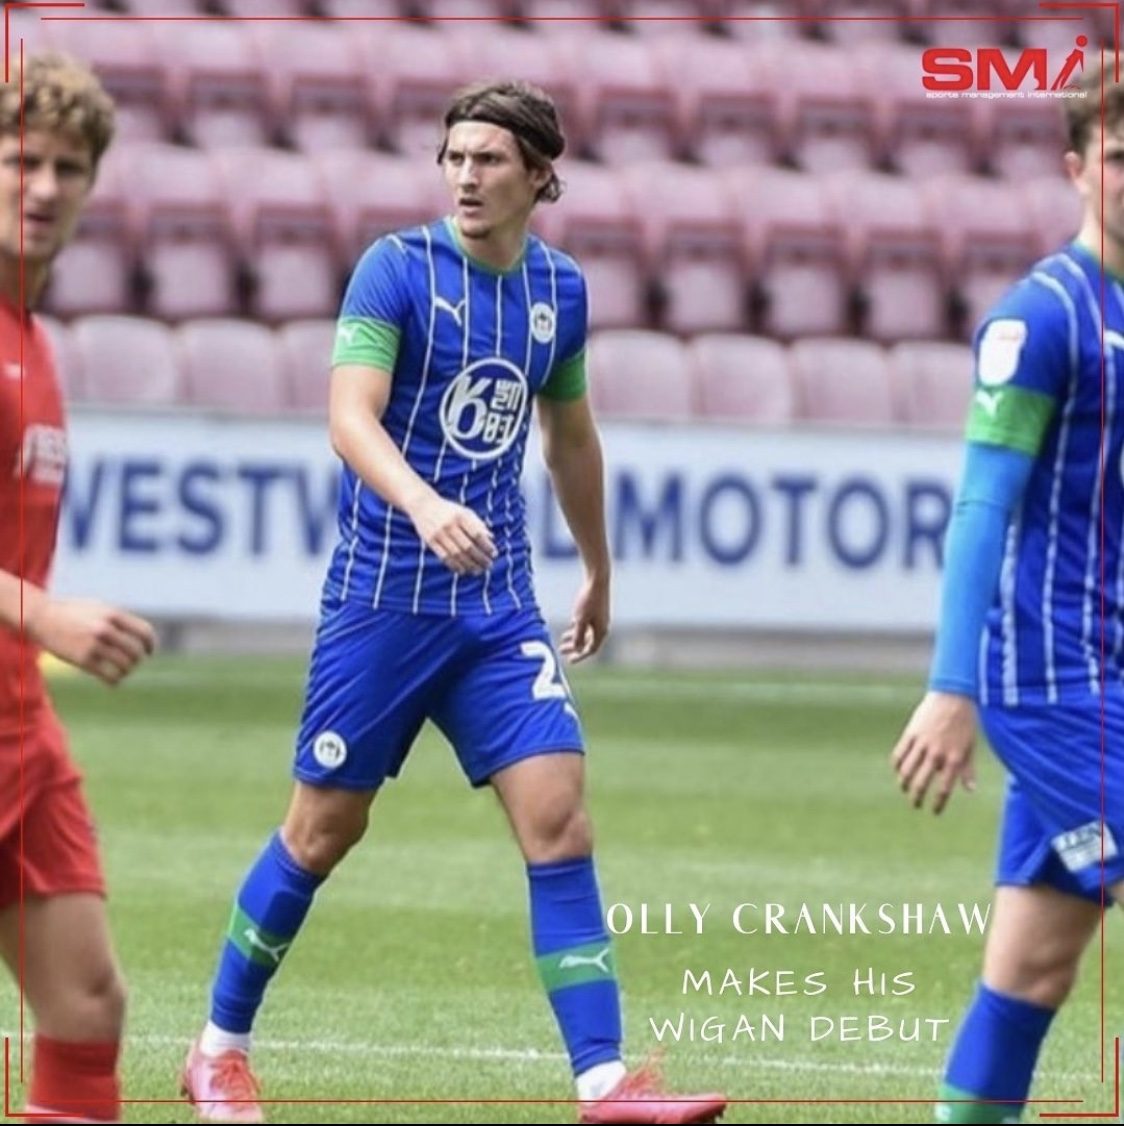 Olly Crankshaw makes Wigan debut